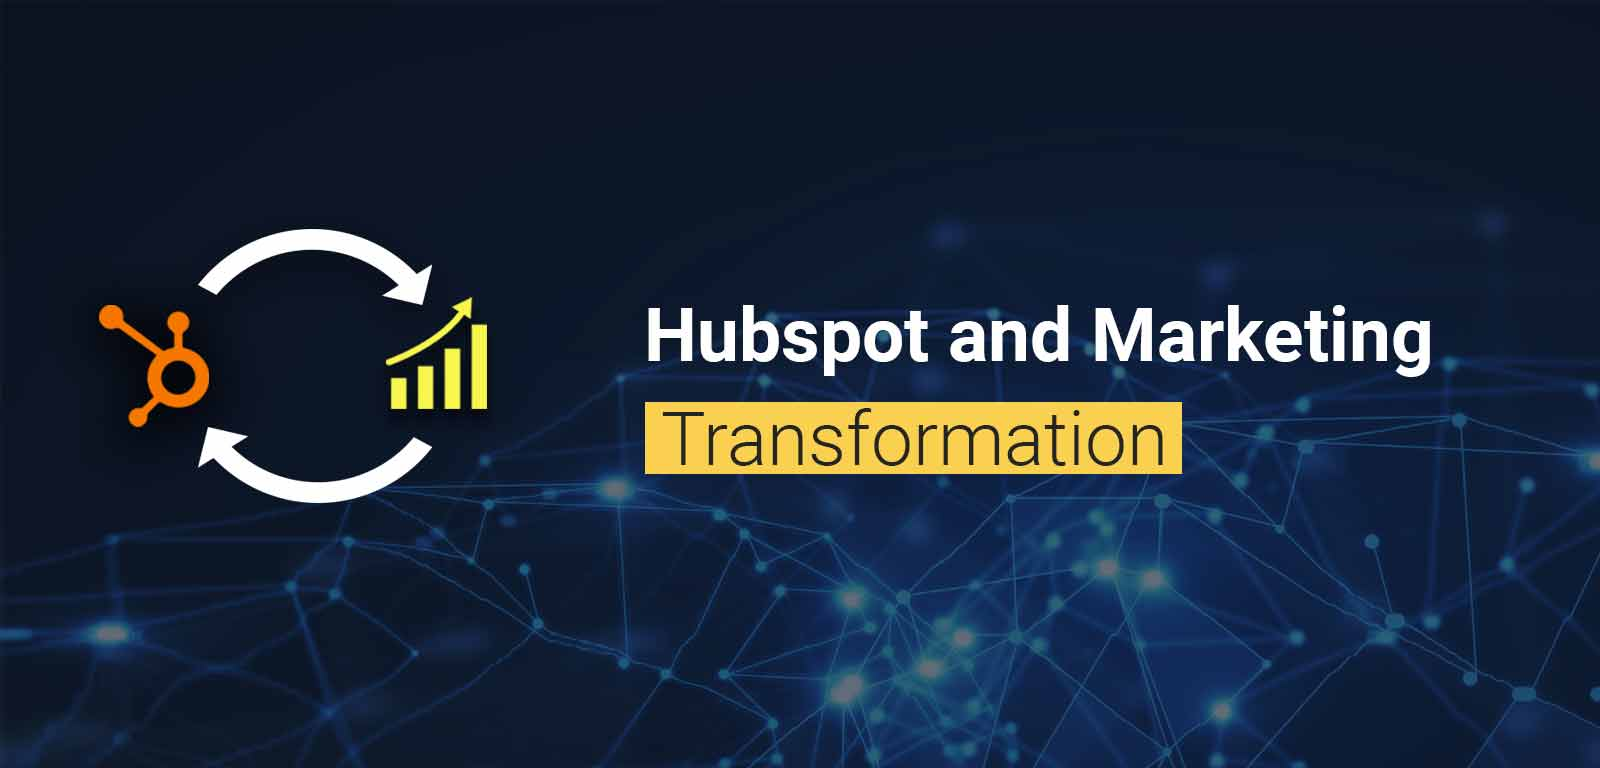 hubspot-and-marketing